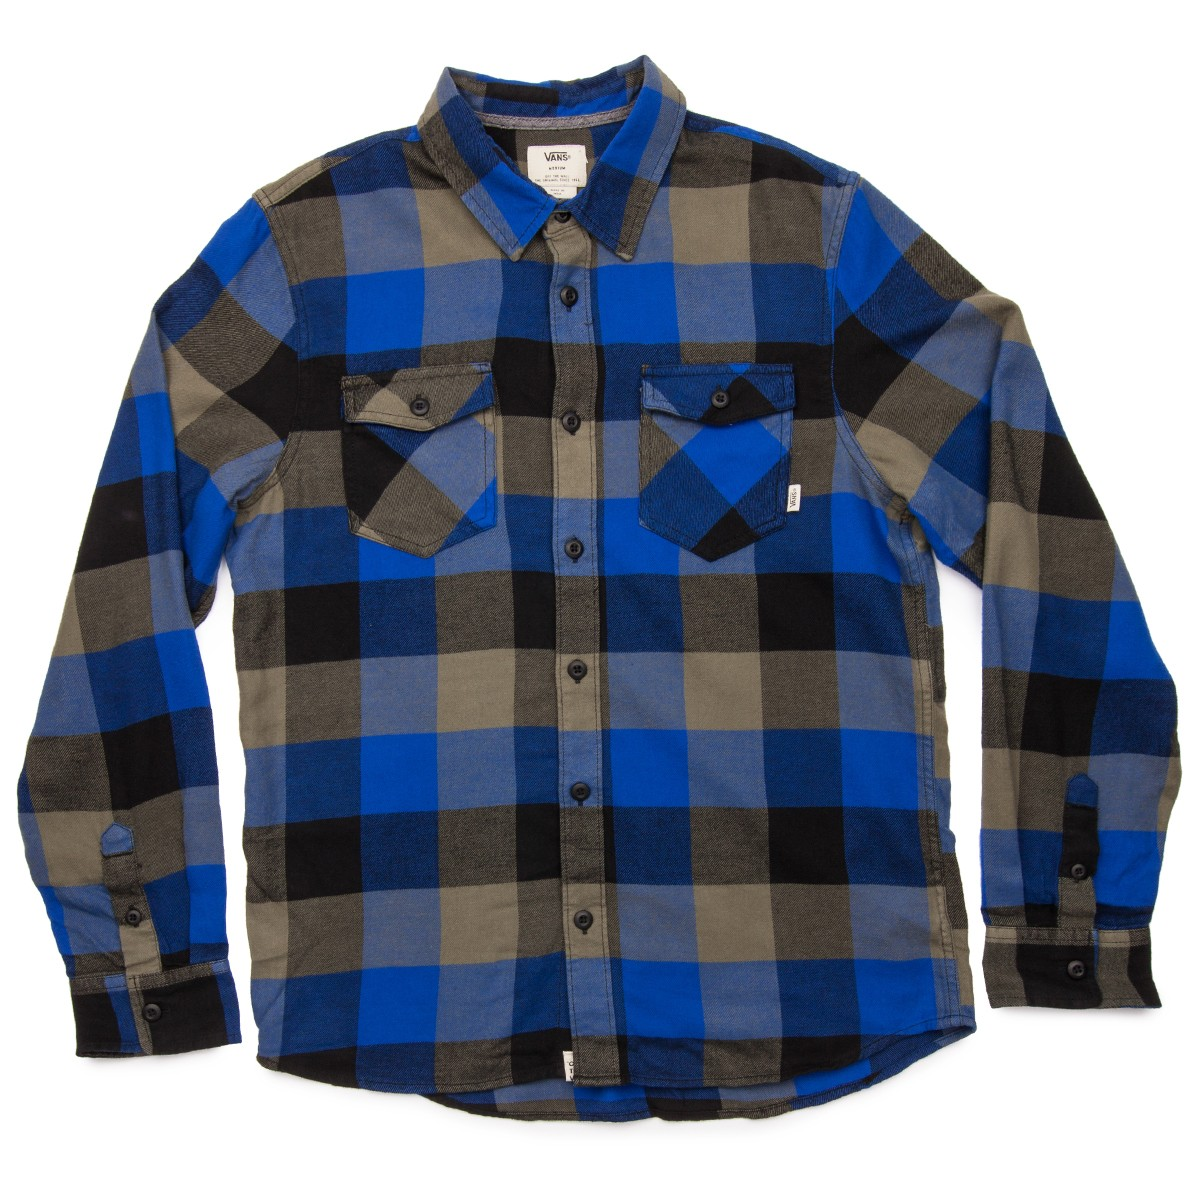 4dabe92983 Vans Box Flannel Shirt - Black/Cobalt